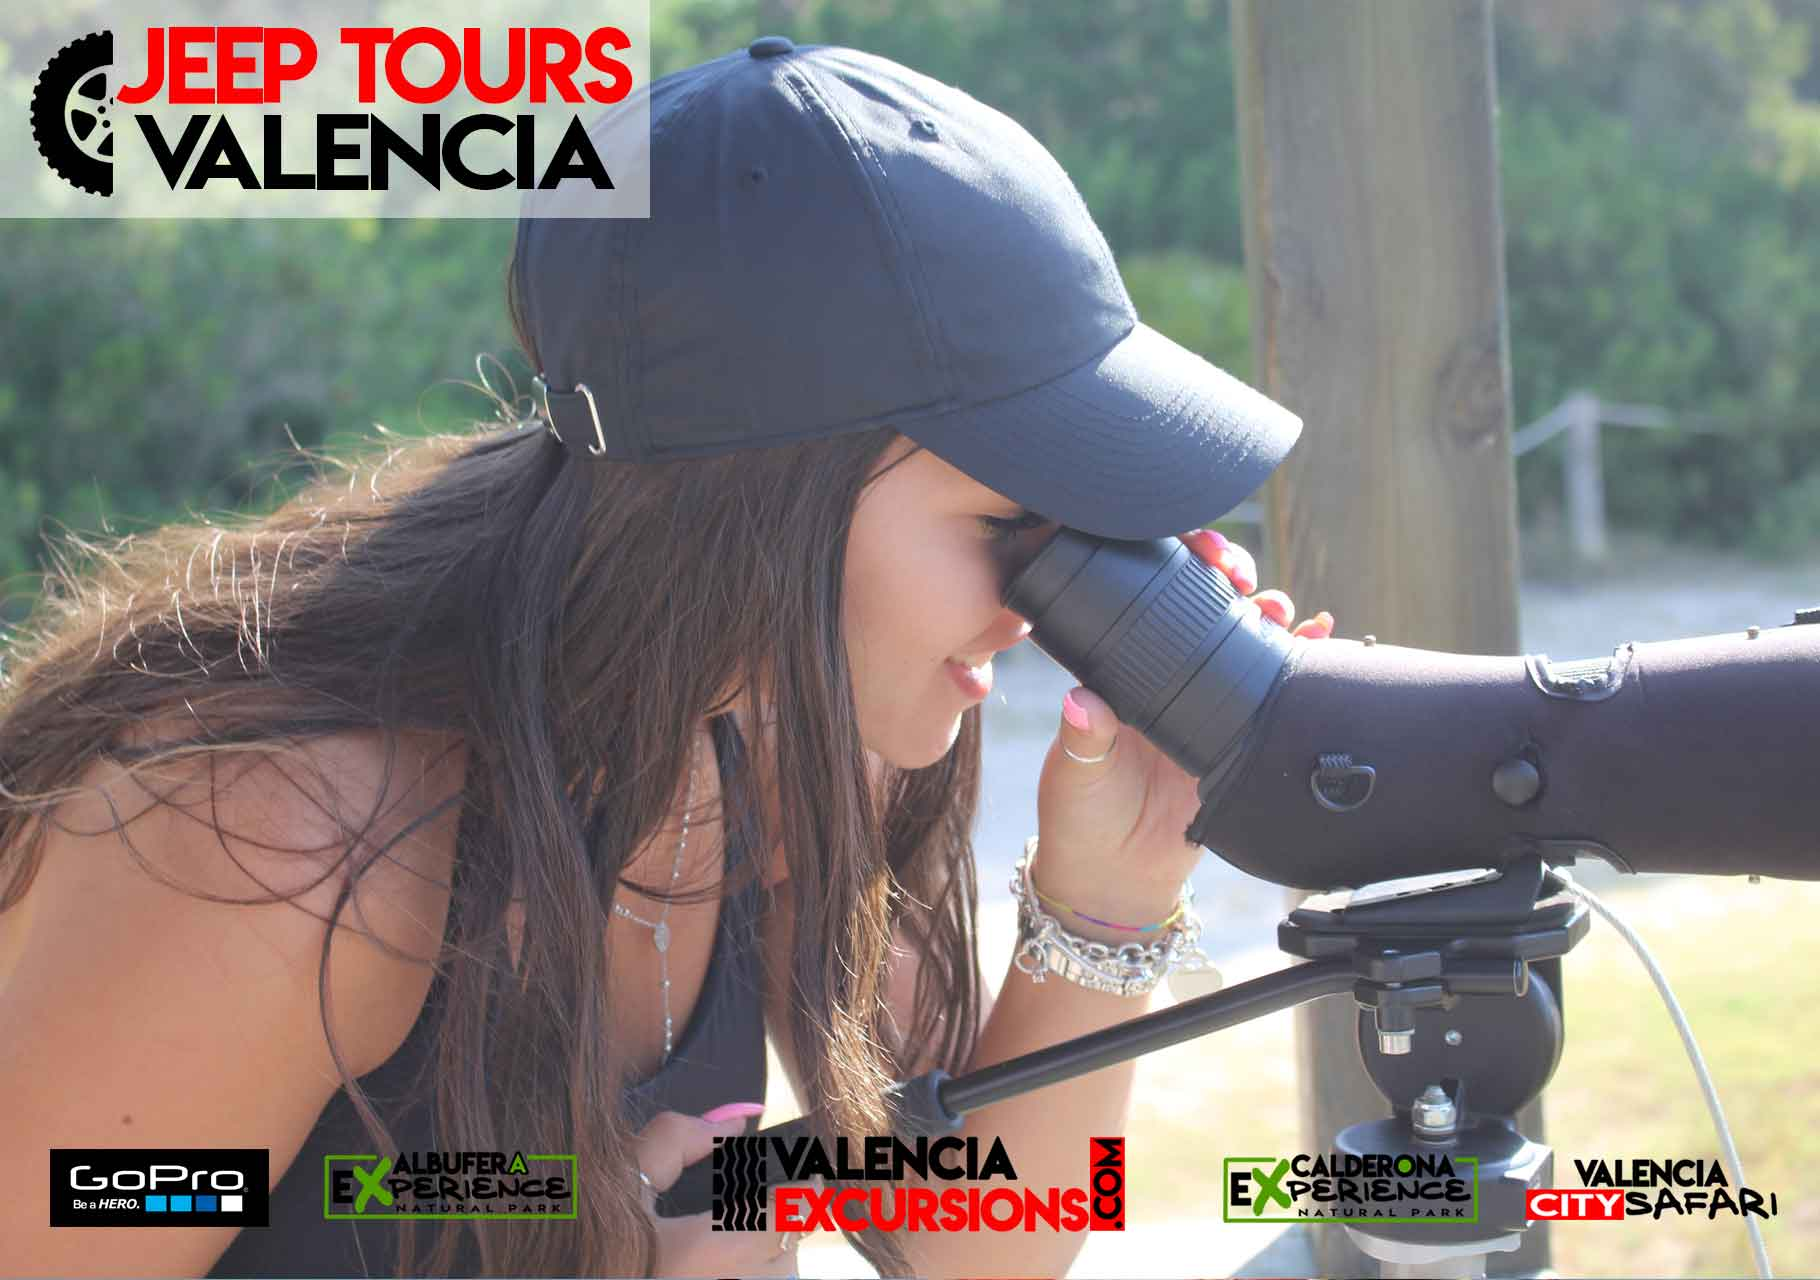 Birdwatching in Albufera National Park during the Jeep tour Albufera EXperience